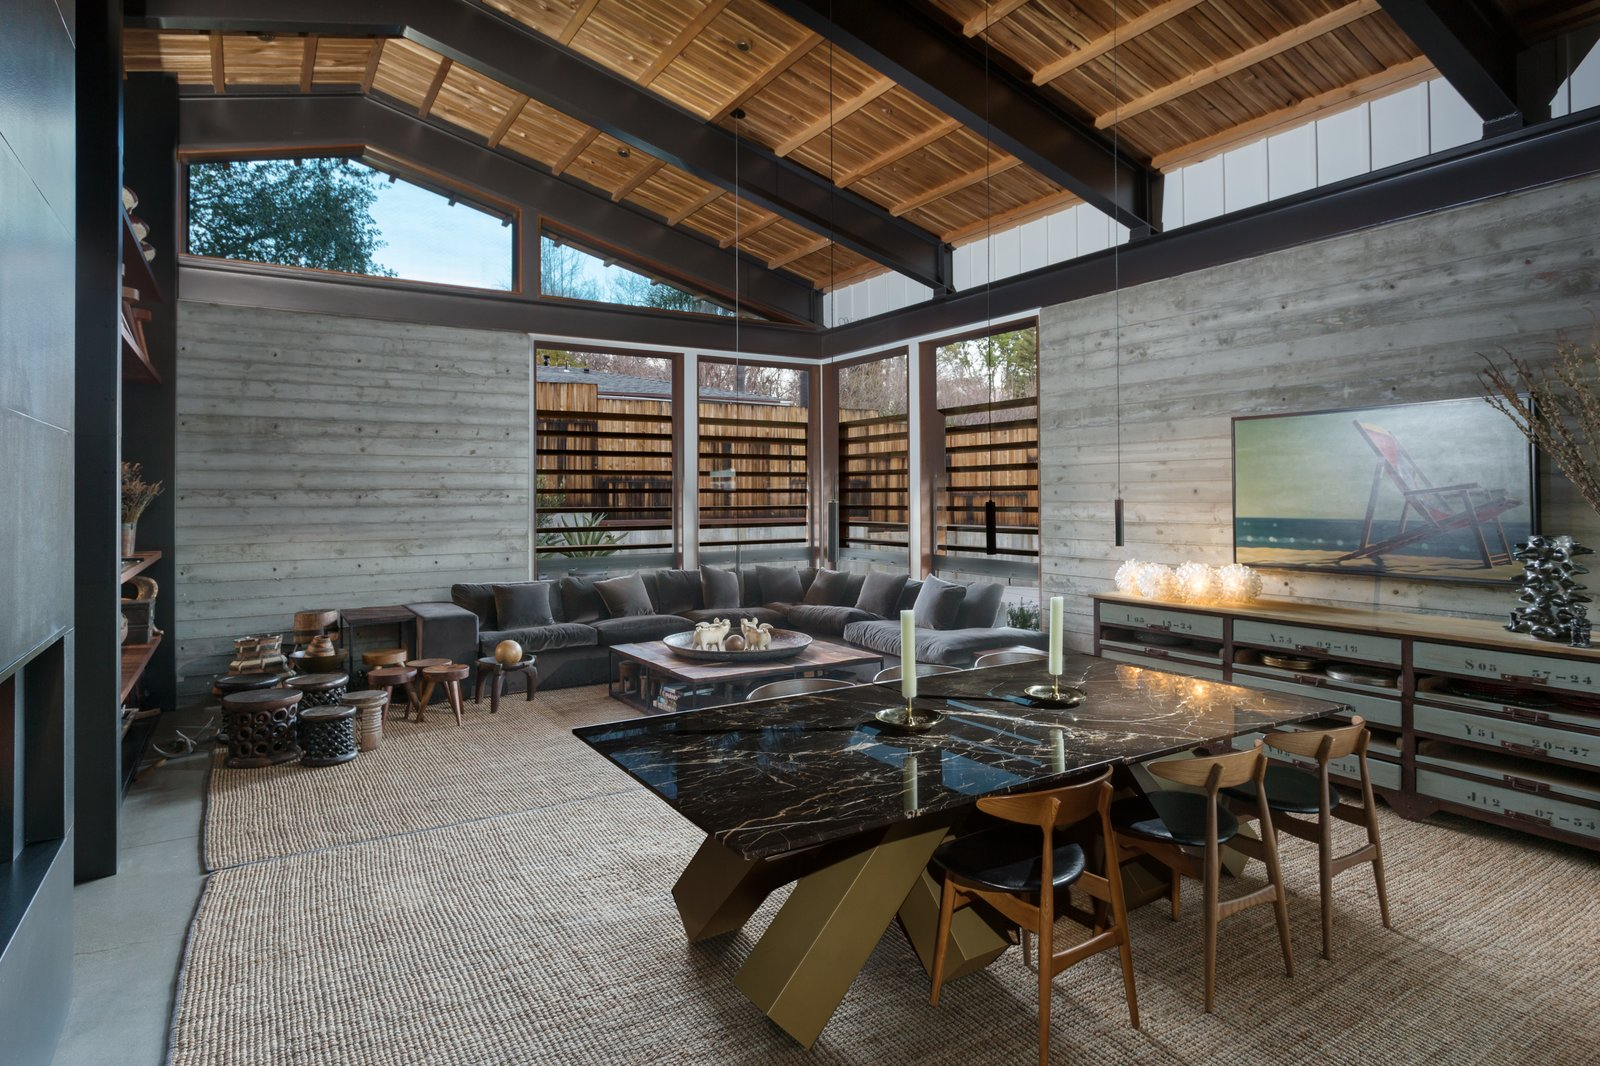 The tongue-and-groove ceiling is an authentic midcentury touch, while clerestory windows help keep the living area bright.